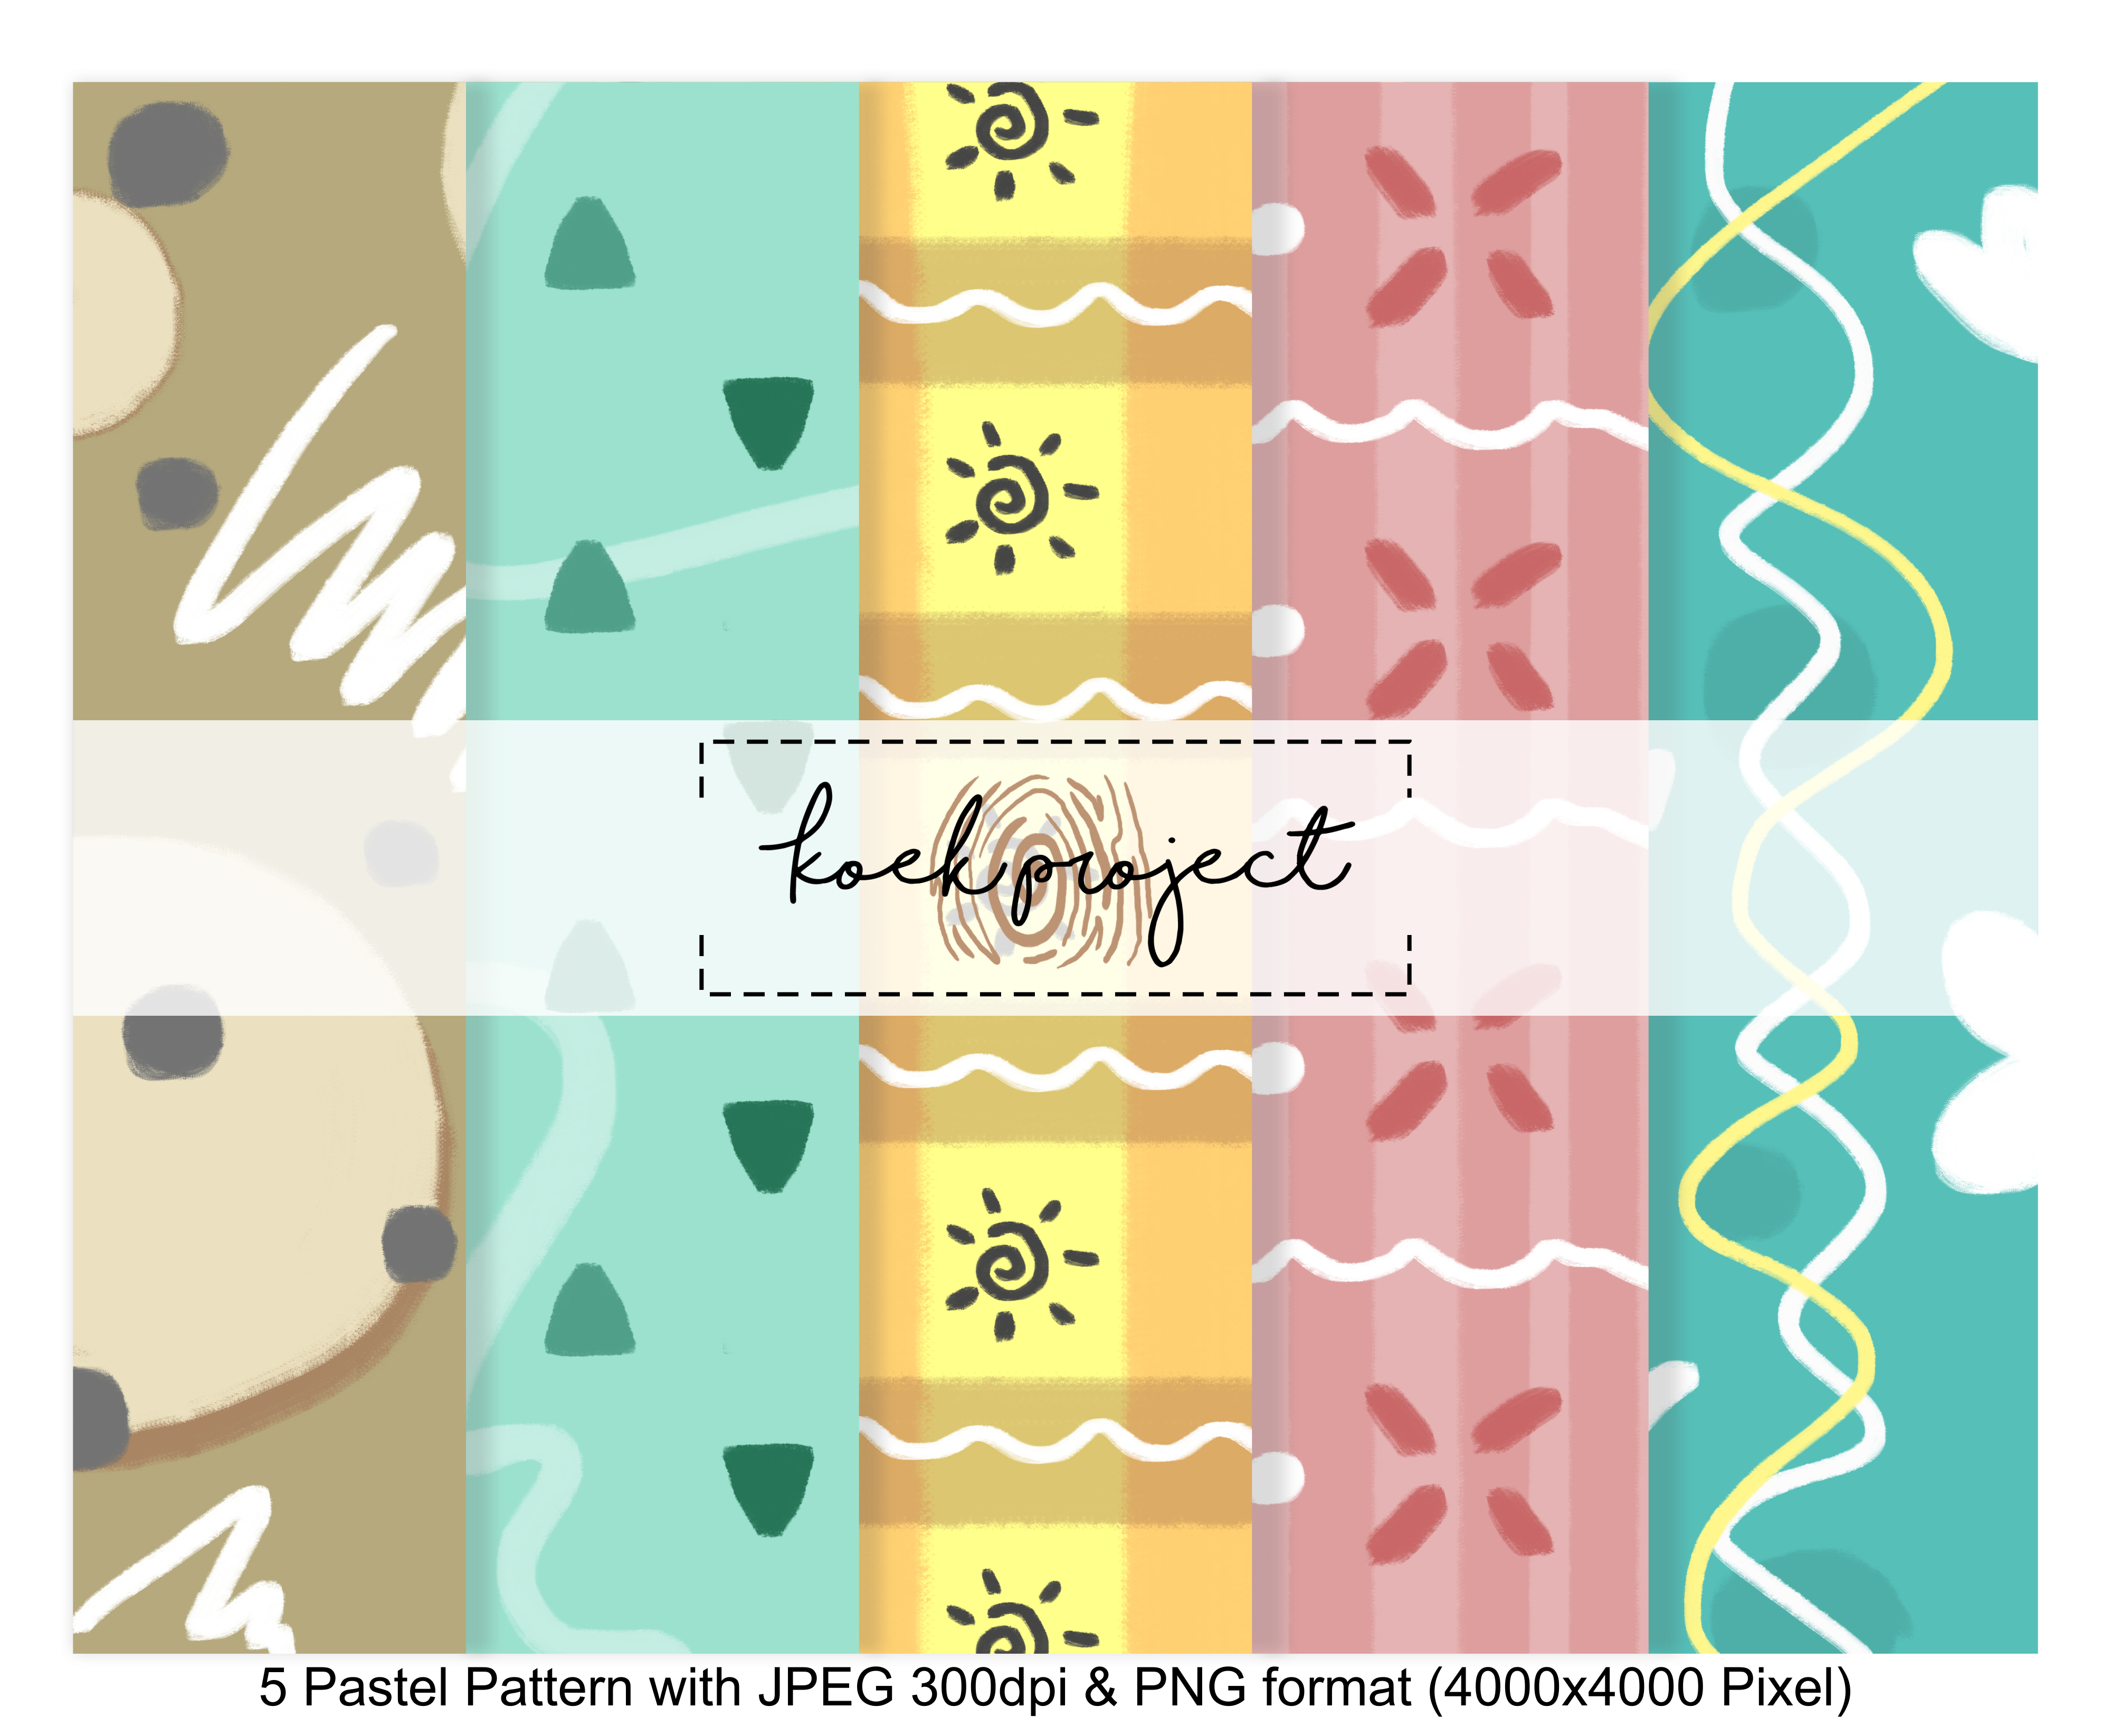 Download Free People In Traditional Markets Graphic By Koekprojects Creative Fabrica for Cricut Explore, Silhouette and other cutting machines.